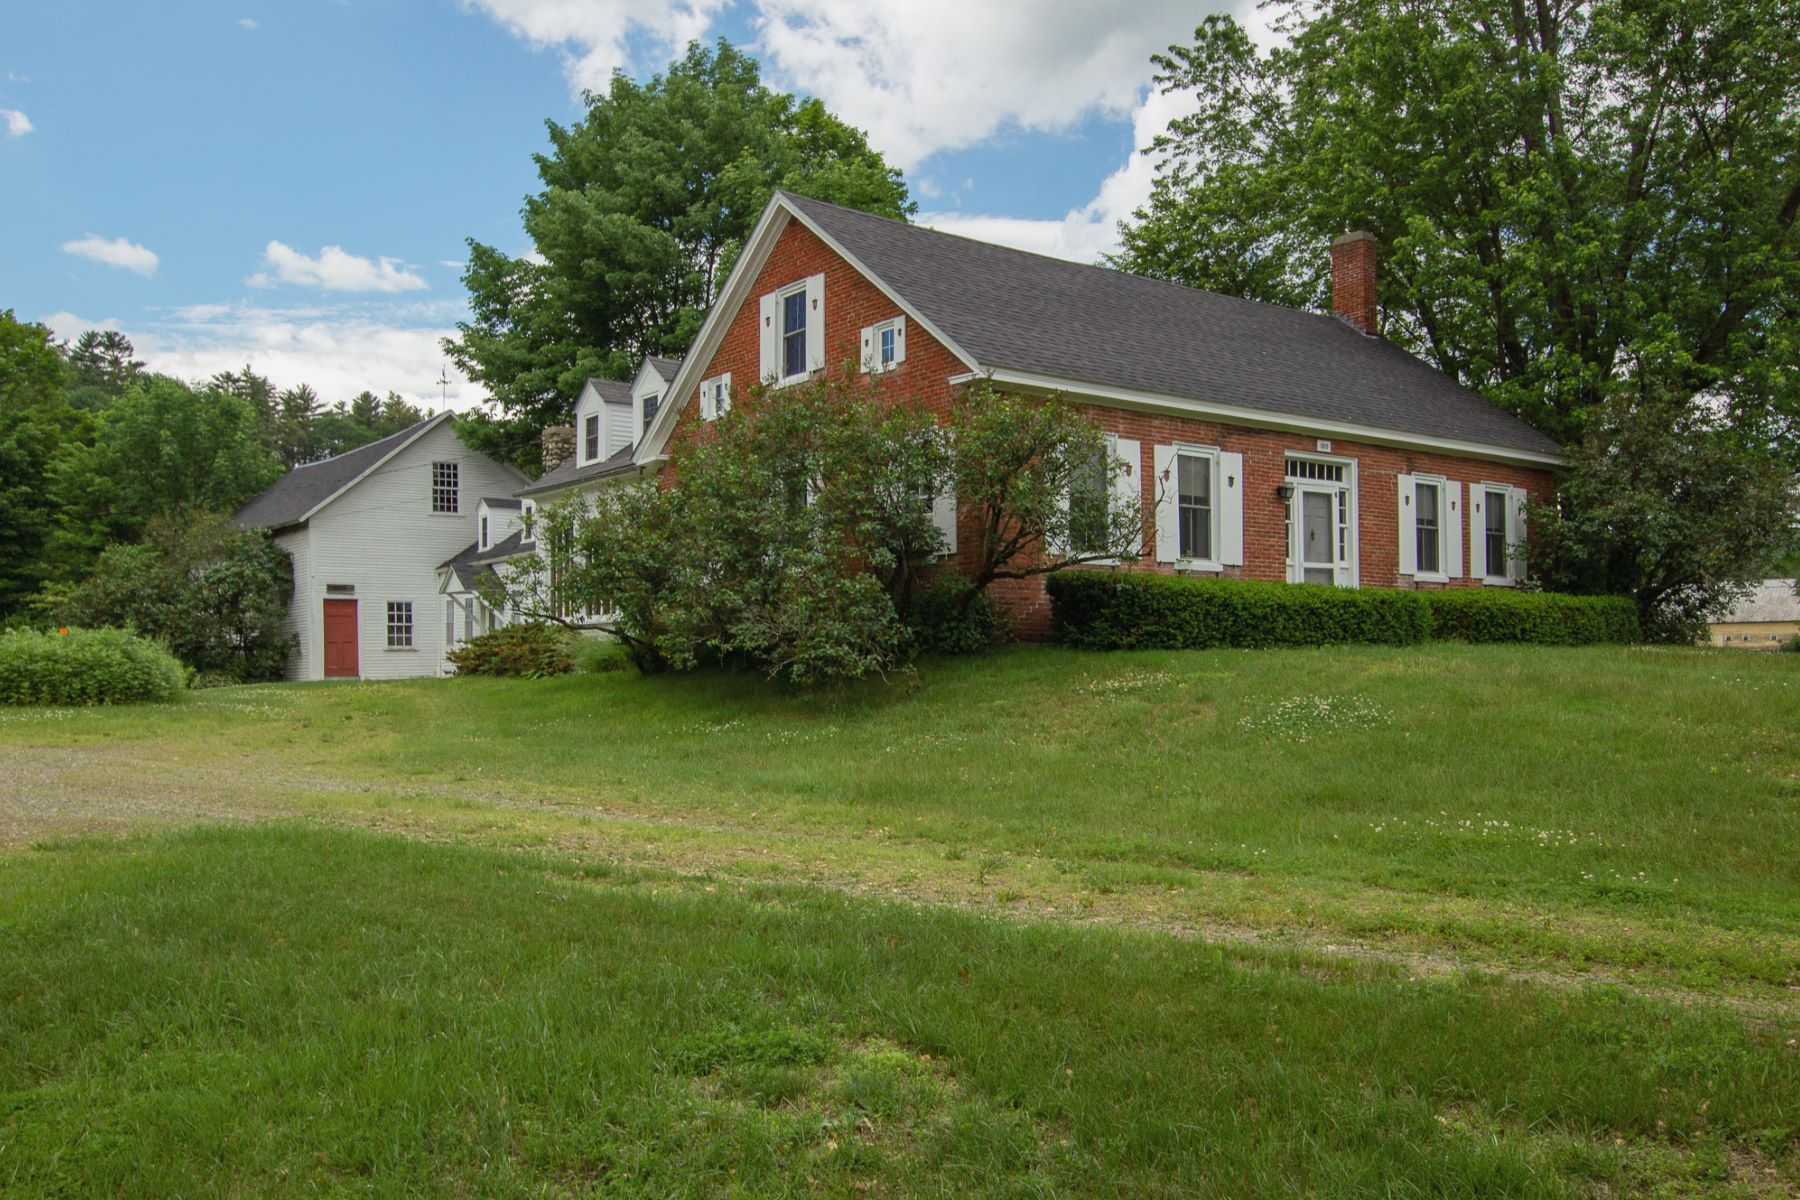 Single Family Homes for Sale at 1985 Vt Route 5 North, Fairlee 1985 Vt Route 5 North Fairlee, Vermont 05045 United States